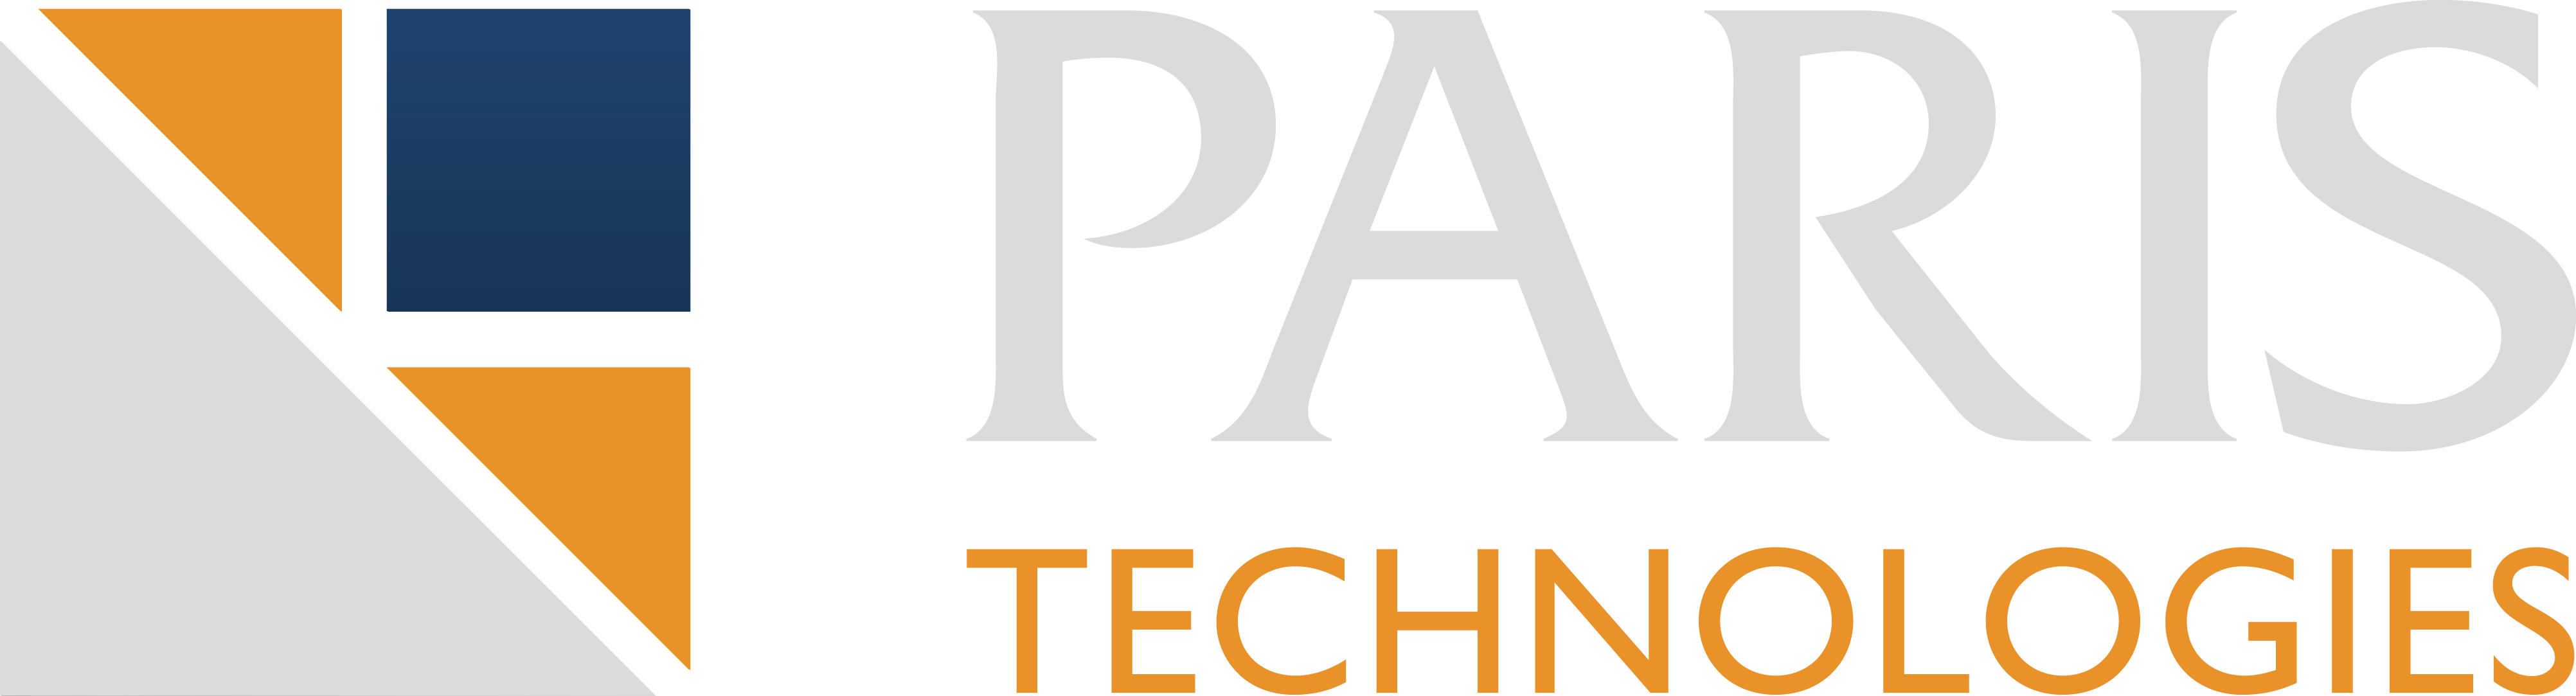 PARIS Tech Logo - Light-1.png